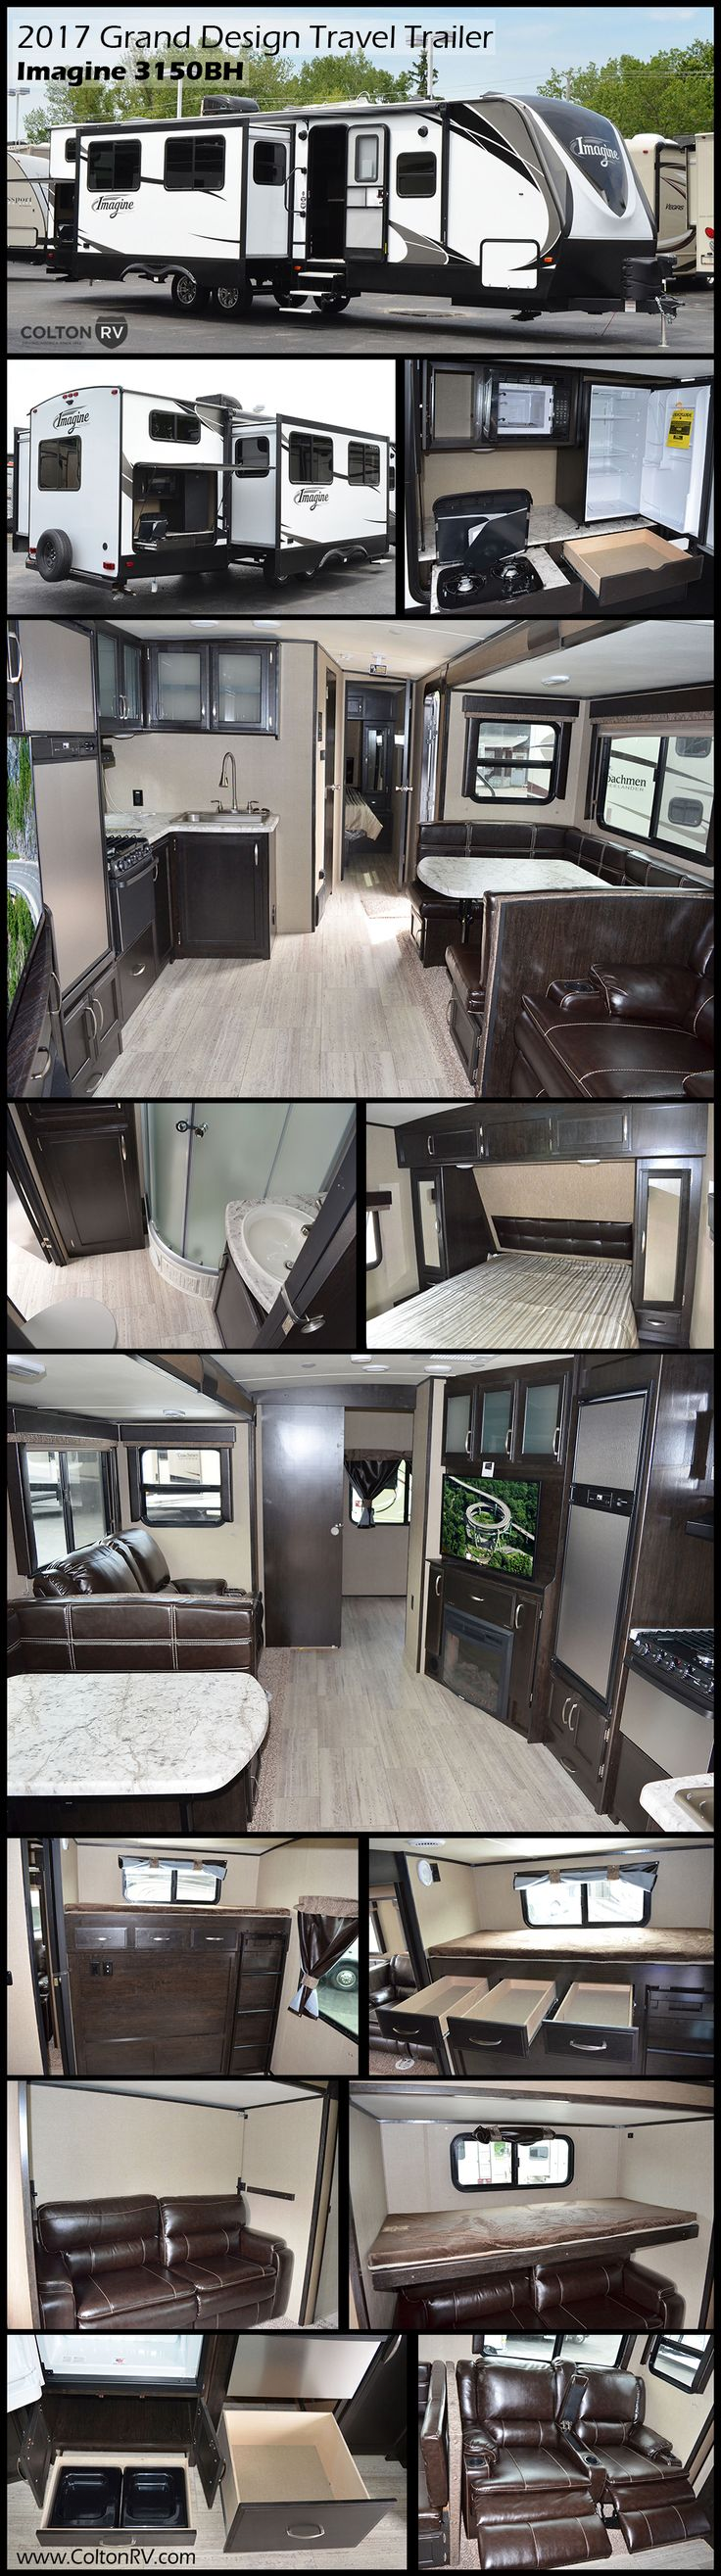 Take the whole gang along in this Grand Design Imagine 3150BH Travel Trailer featuring double slides, private bunkhouse, plus an outdoor kitchen with a two burner cook-top, refrigerator and microwave oven, making it easy to create your camp favorites right outside!